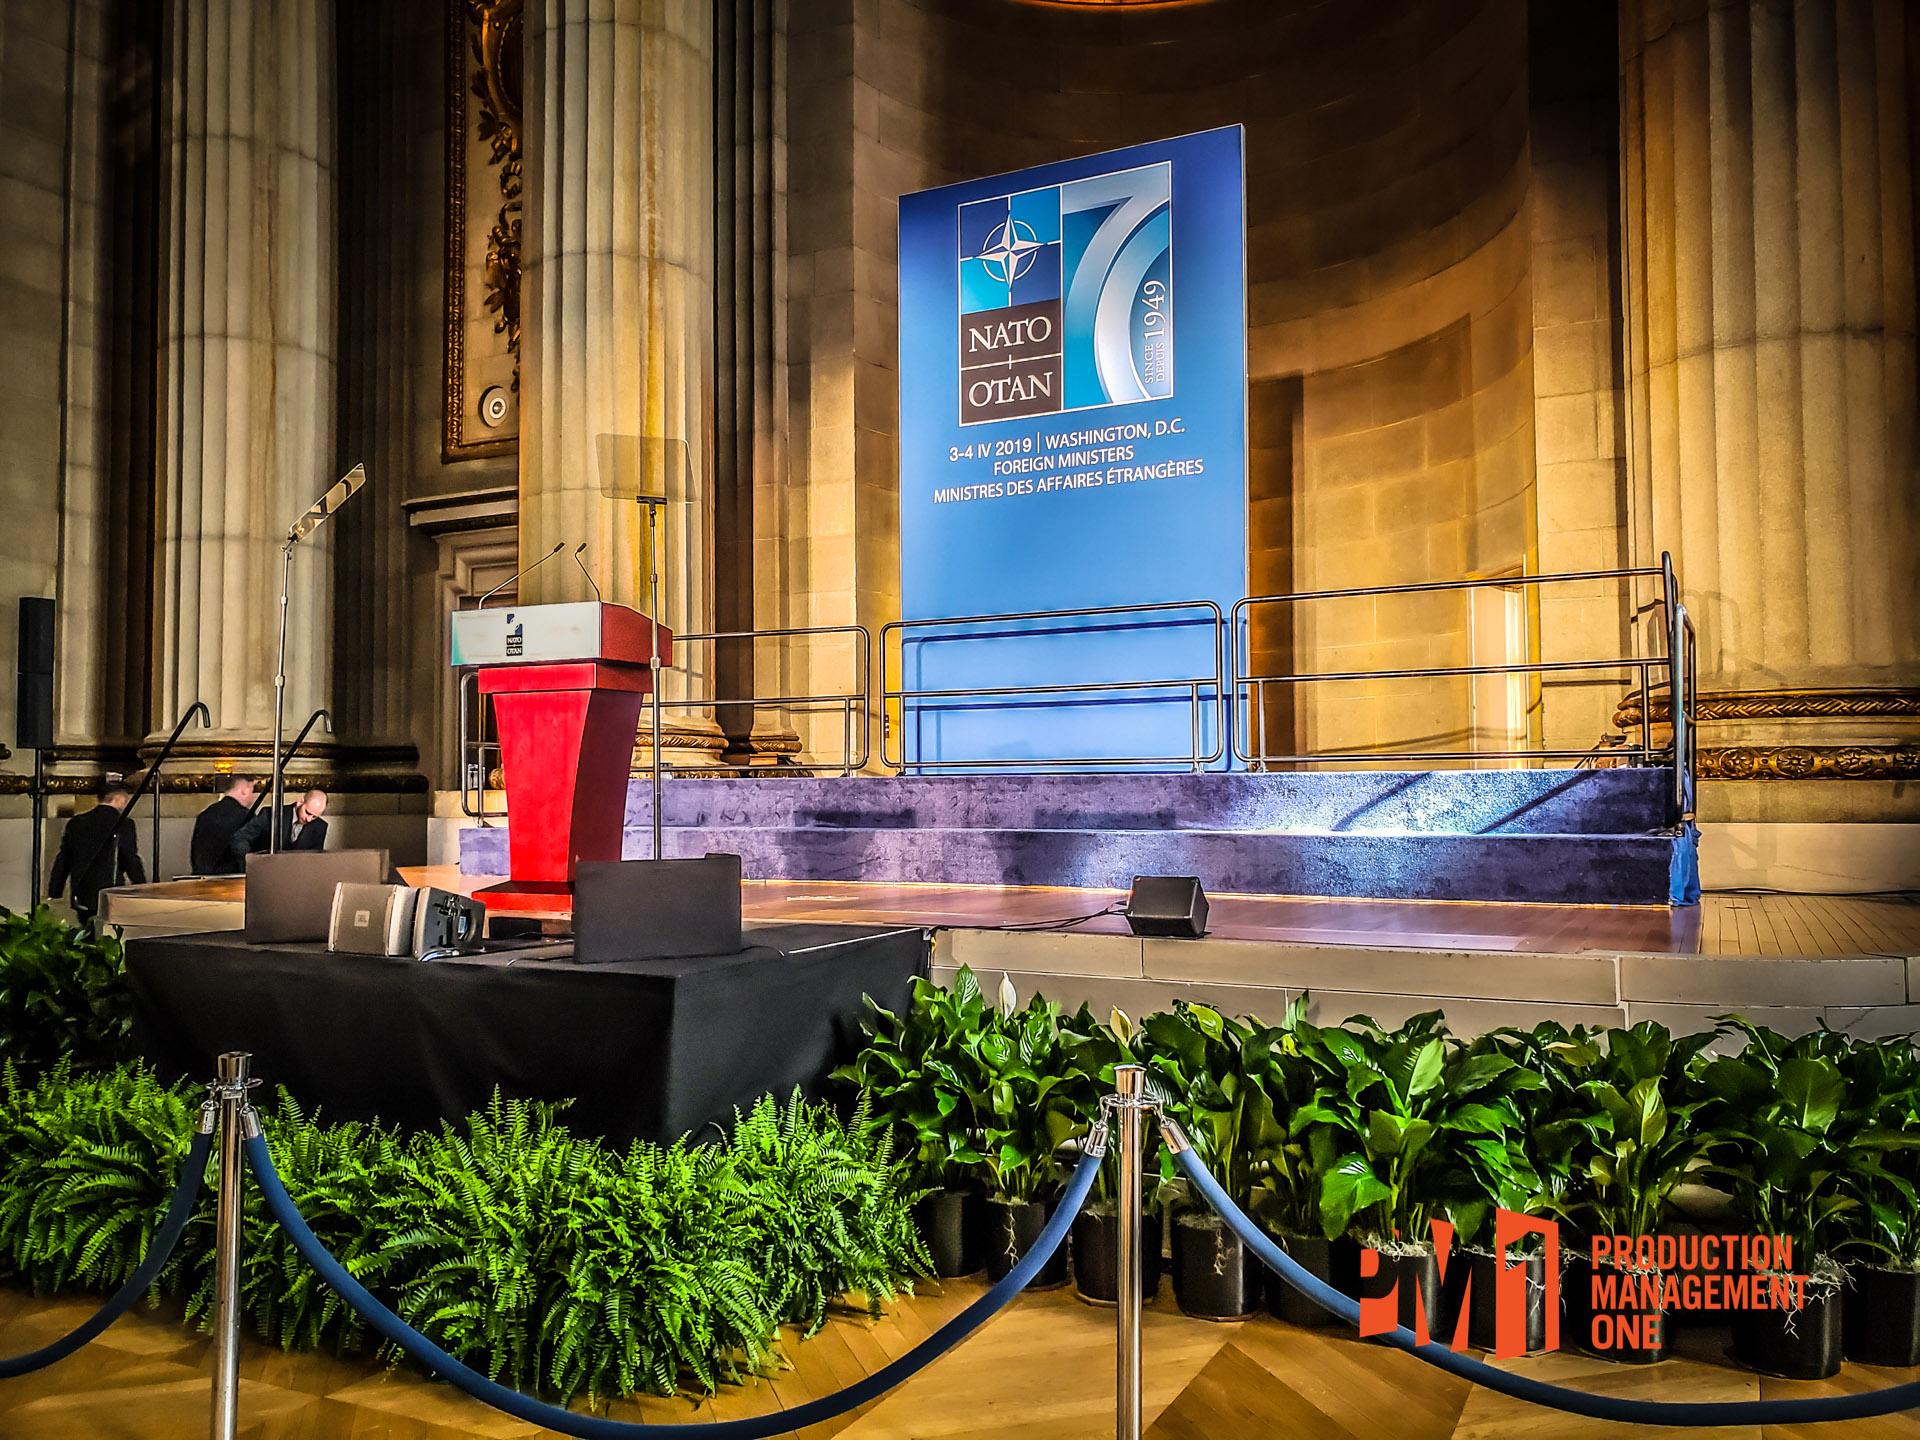 Full Event Production For NATO / US State Department at the Historic Andrew W. Mellon Auditorium in Washington DC